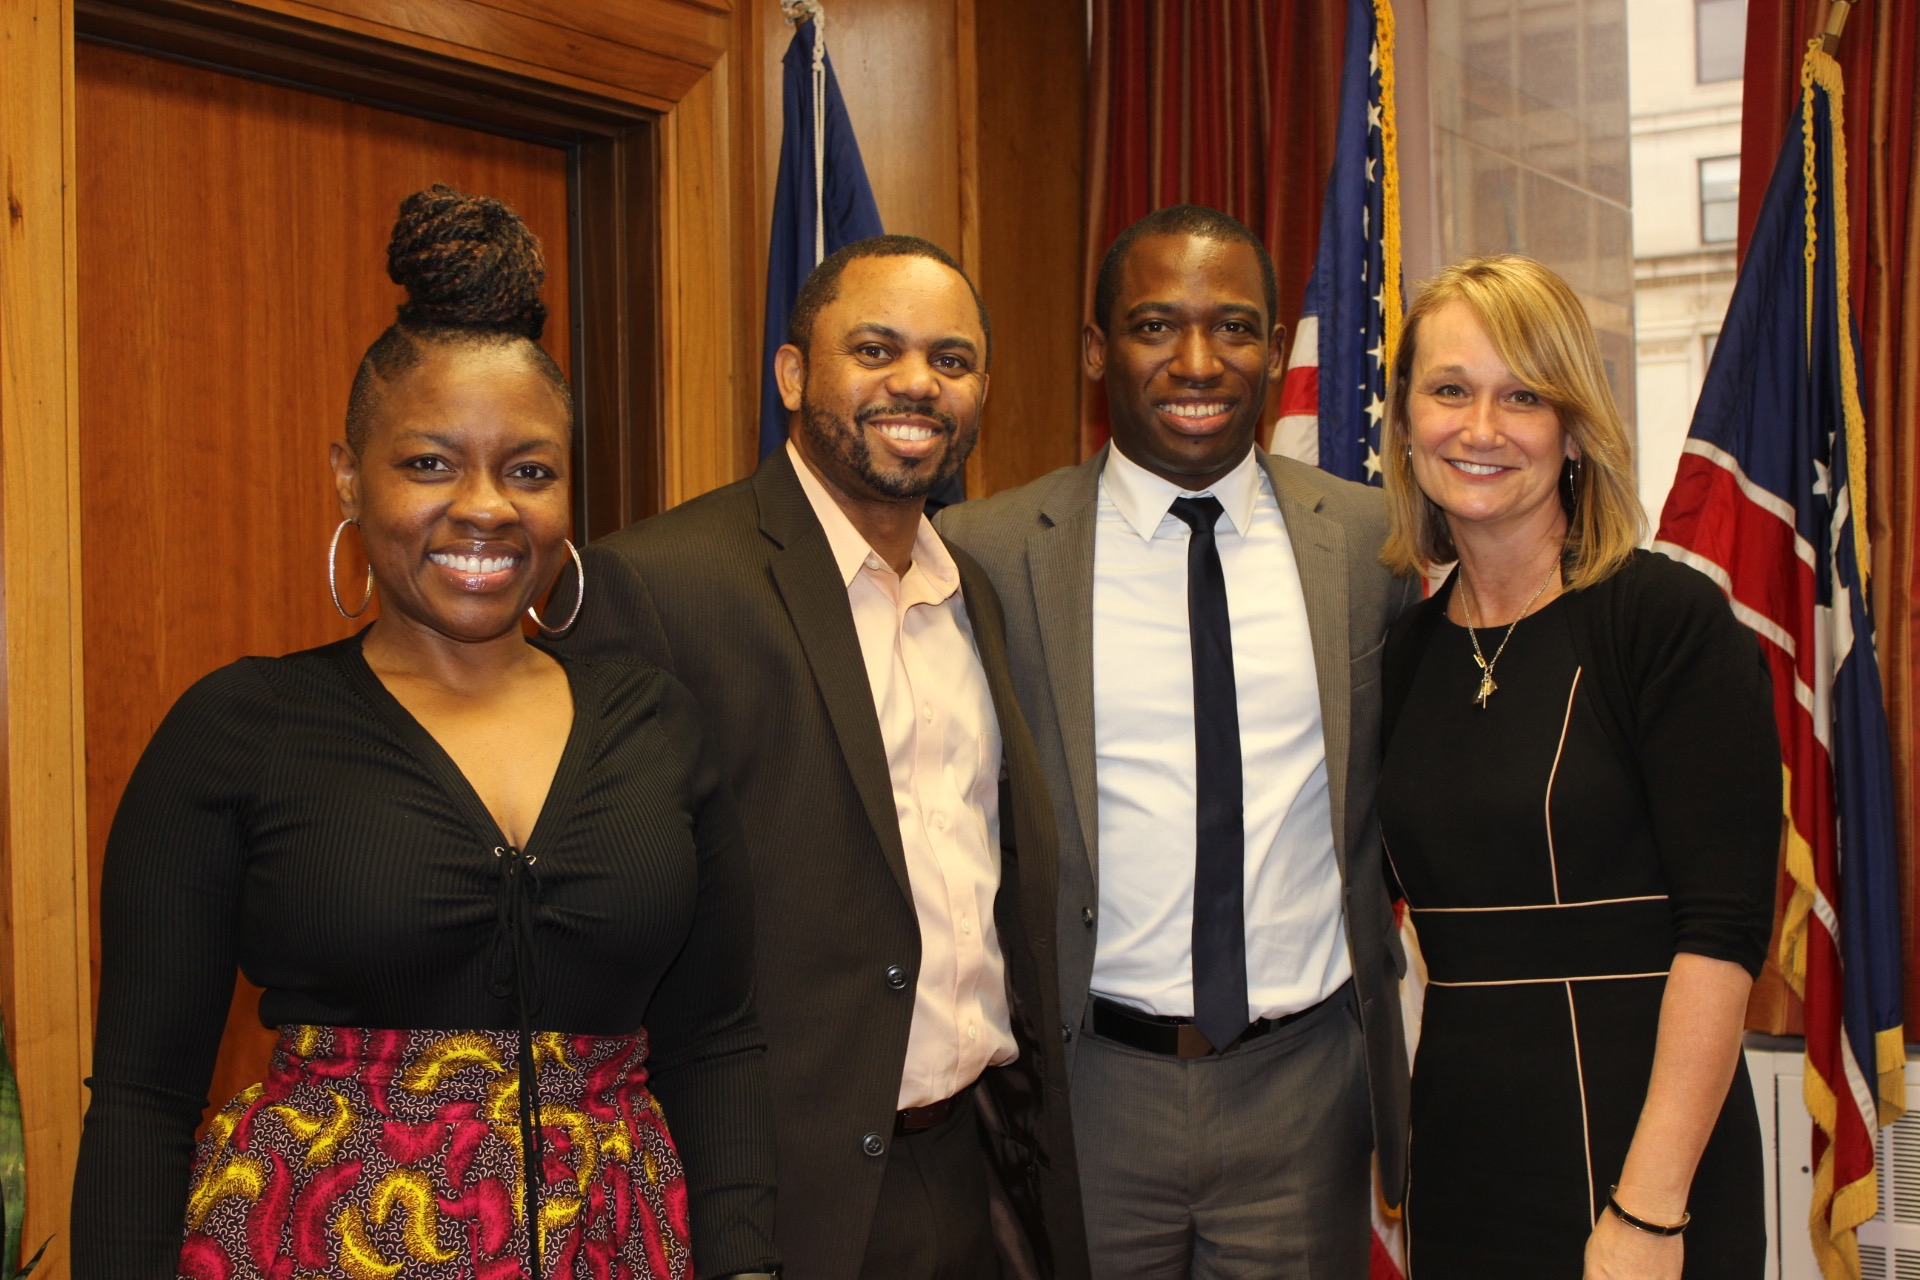 Interview with Mayor Levar Stoney